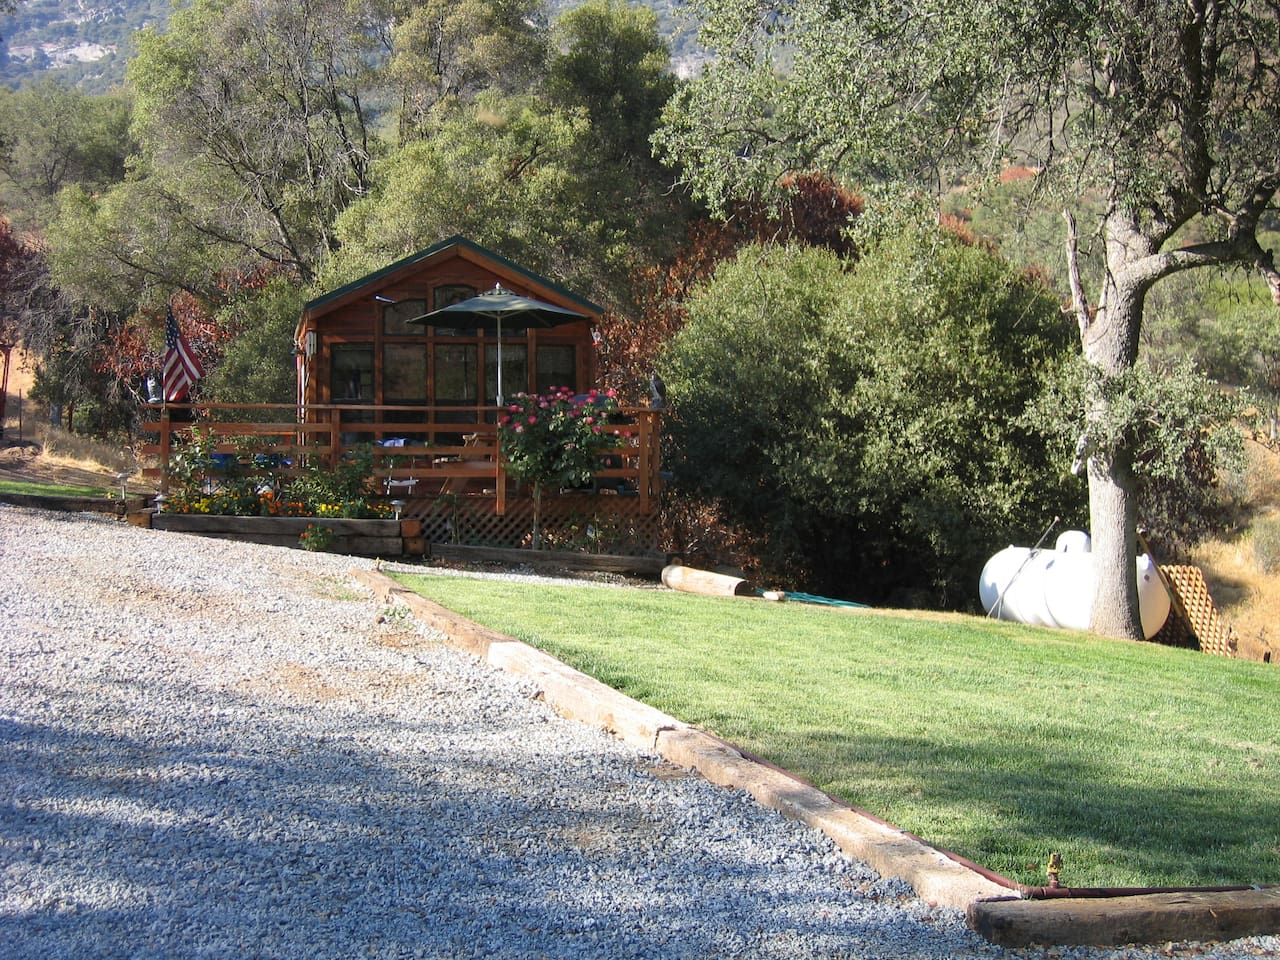 canyon kings cabin grant photo stock sign at california sequoia national general gamlin for grove usa cabins park the in